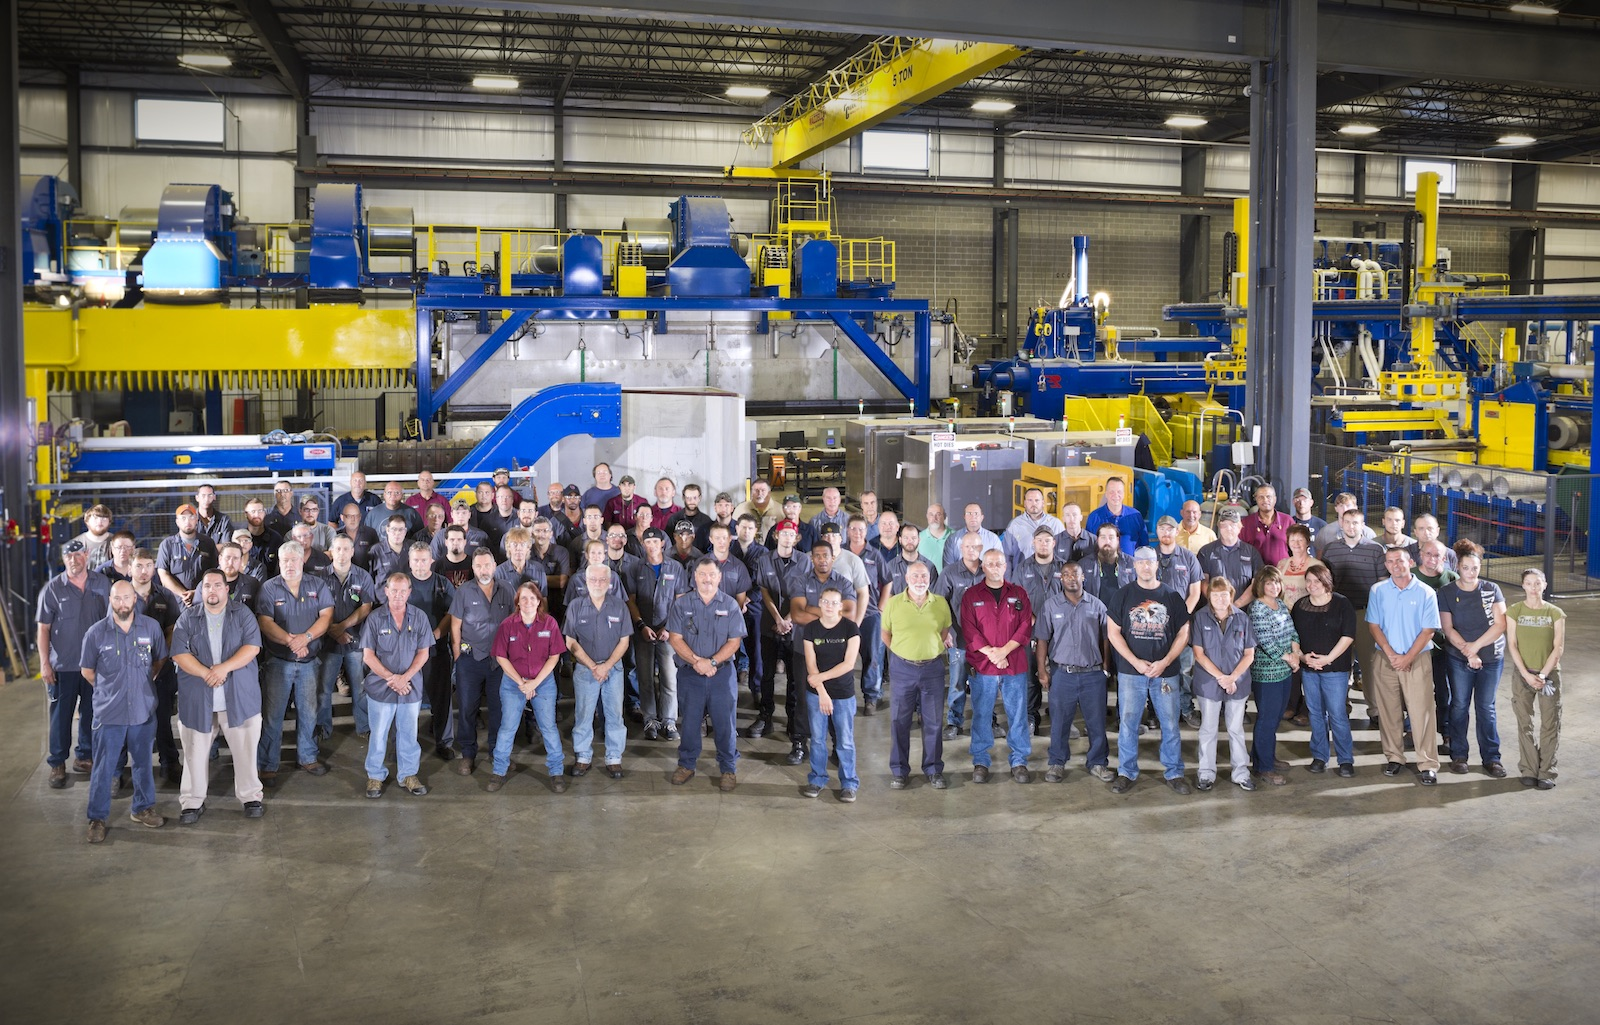 Opening of Pennex's new extrusion press line at Leetonia in 2015.